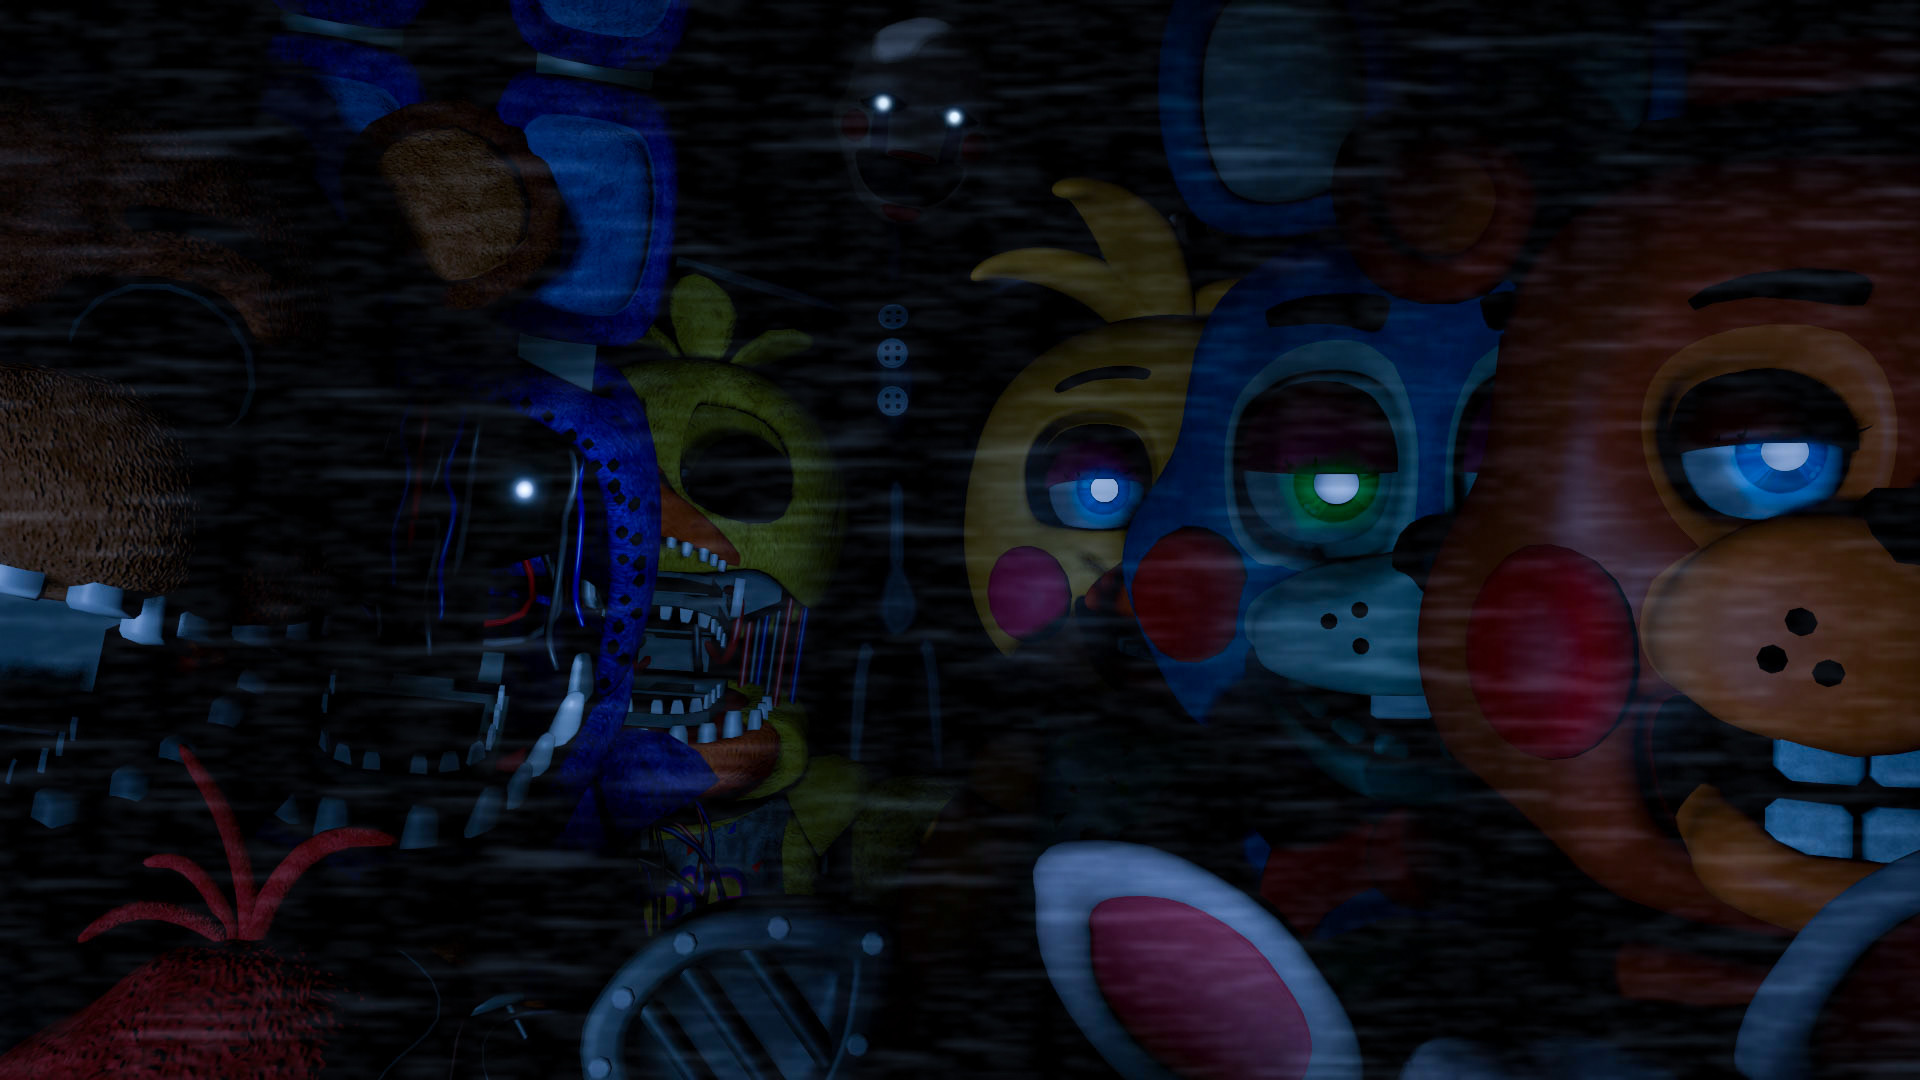 1920x1080 Fnaf Etc., Sister Location, Toy, Search, Friends, Places